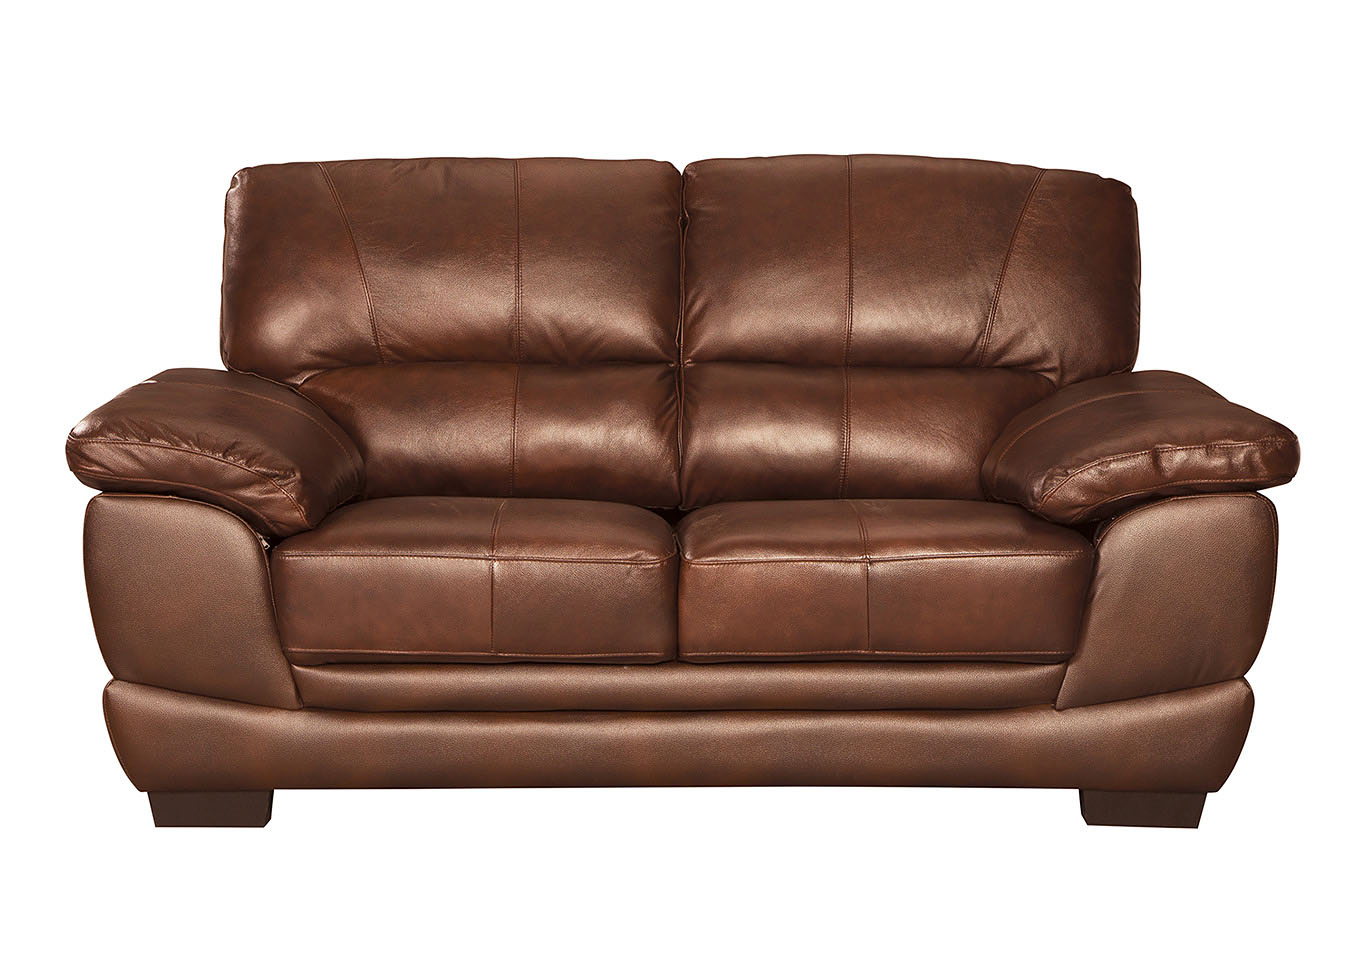 Fontenot Chocolate Loveseat,Signature Design By Ashley